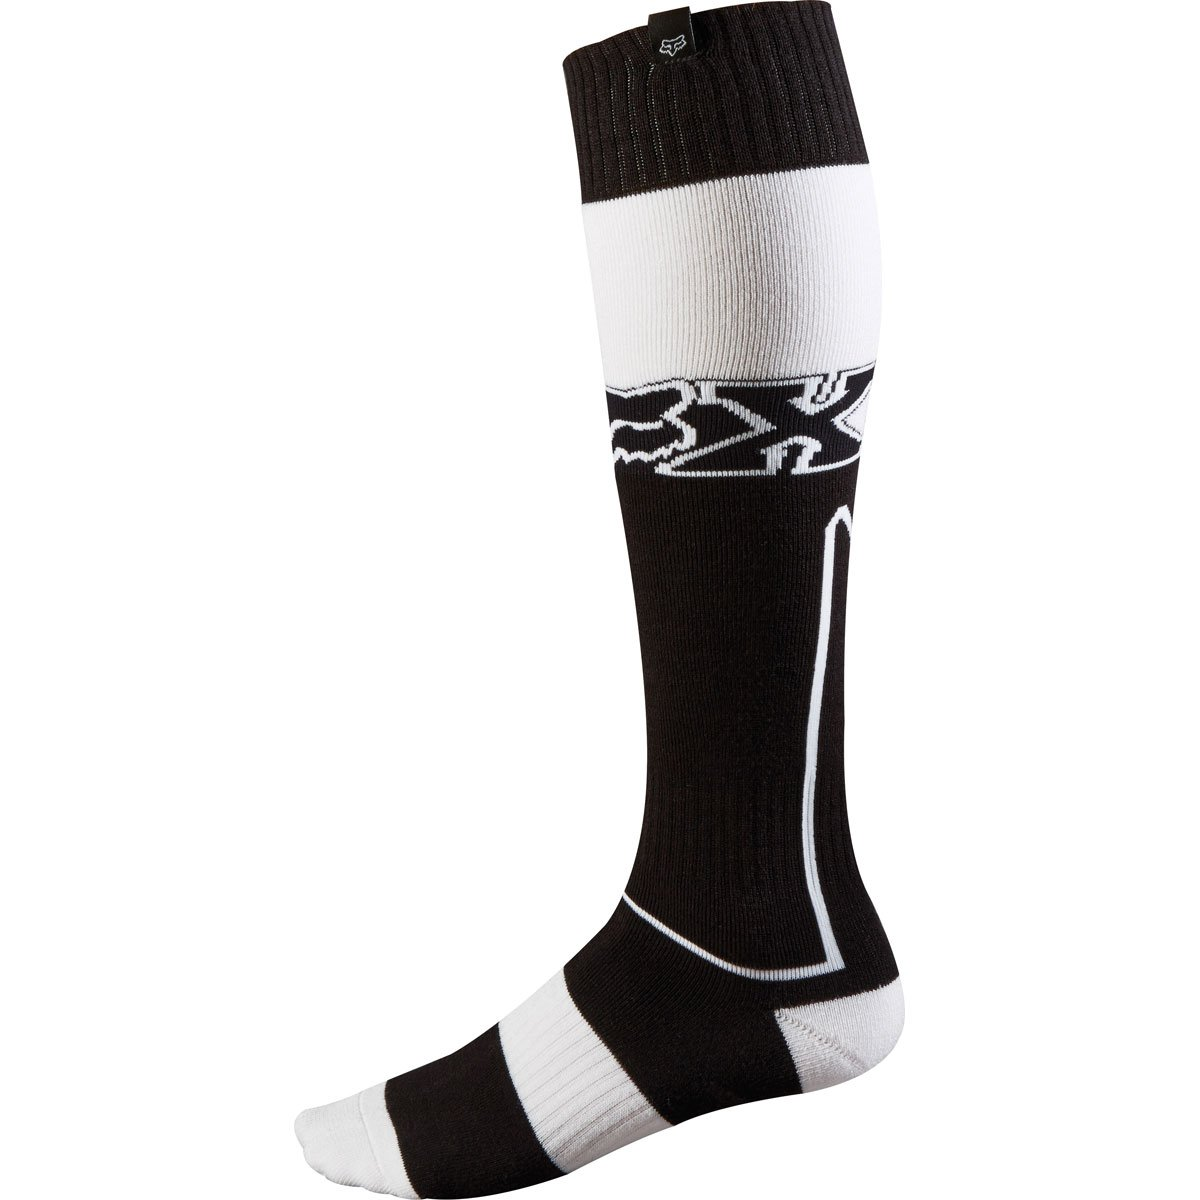 Fox Racing Fri Imperial Thick Men's MX Motorcycle Socks - Black/White/Small